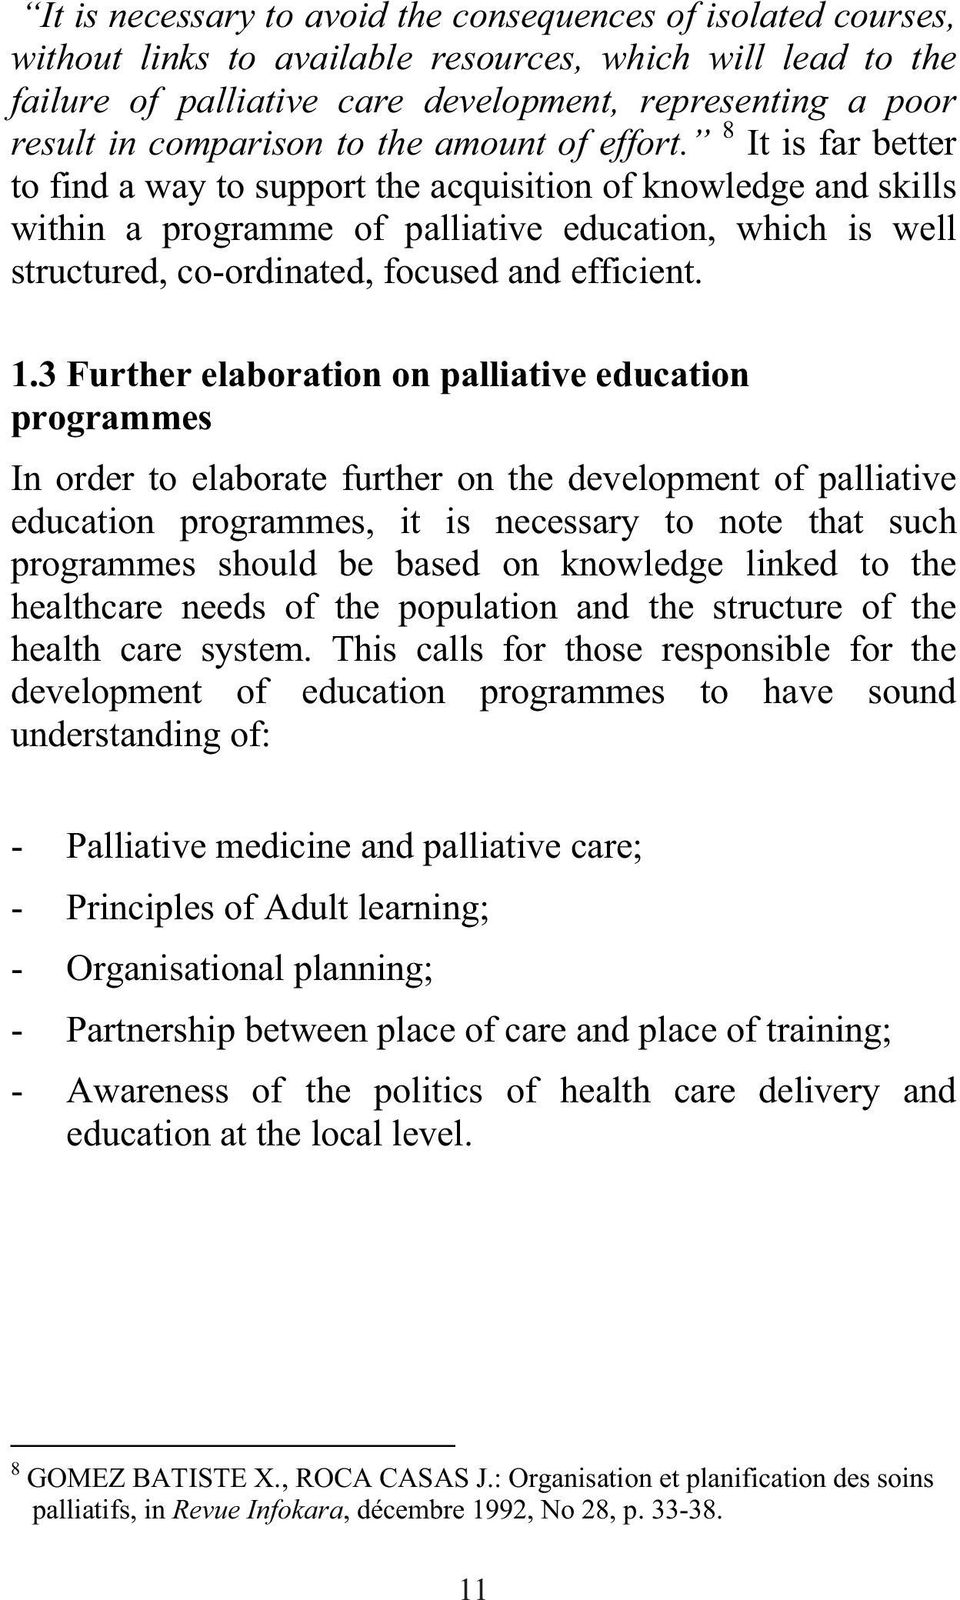 8 It is far better to find a way to support the acquisition of knowledge and skills within a programme of palliative education, which is well structured, co-ordinated, focused and efficient. 1.